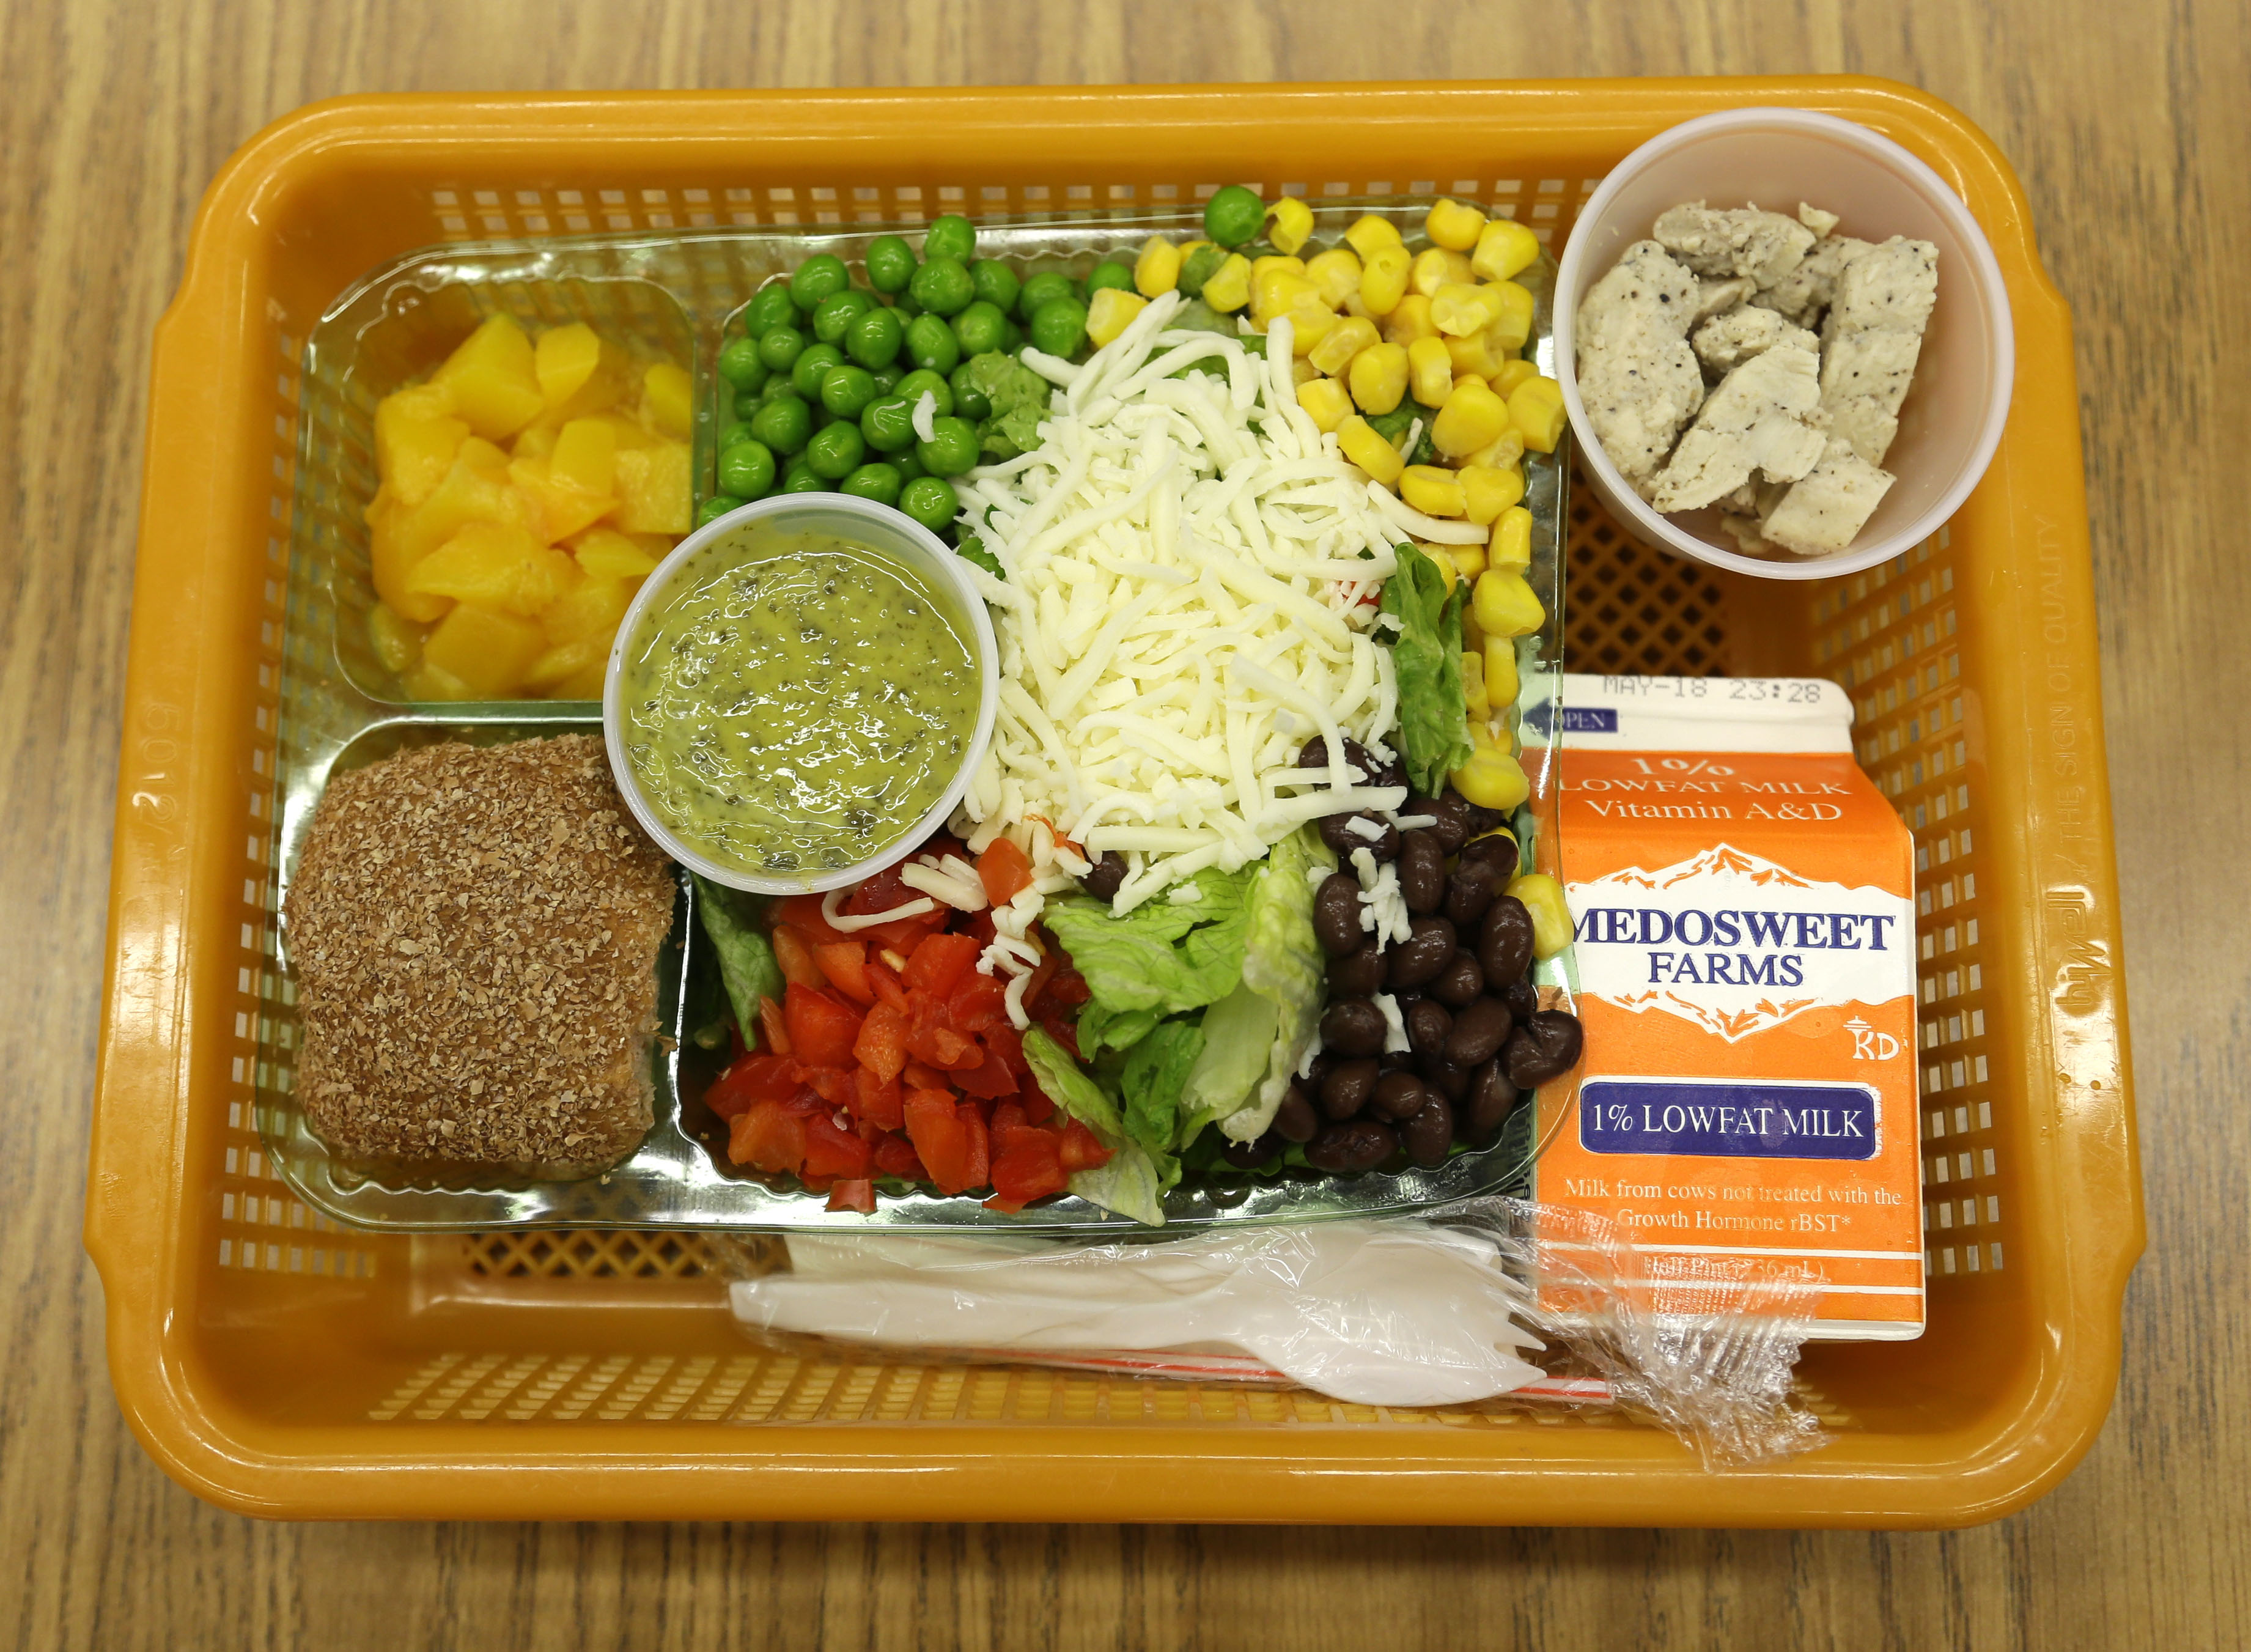 For kids, healthier lunch choices could come down to salad bar placement